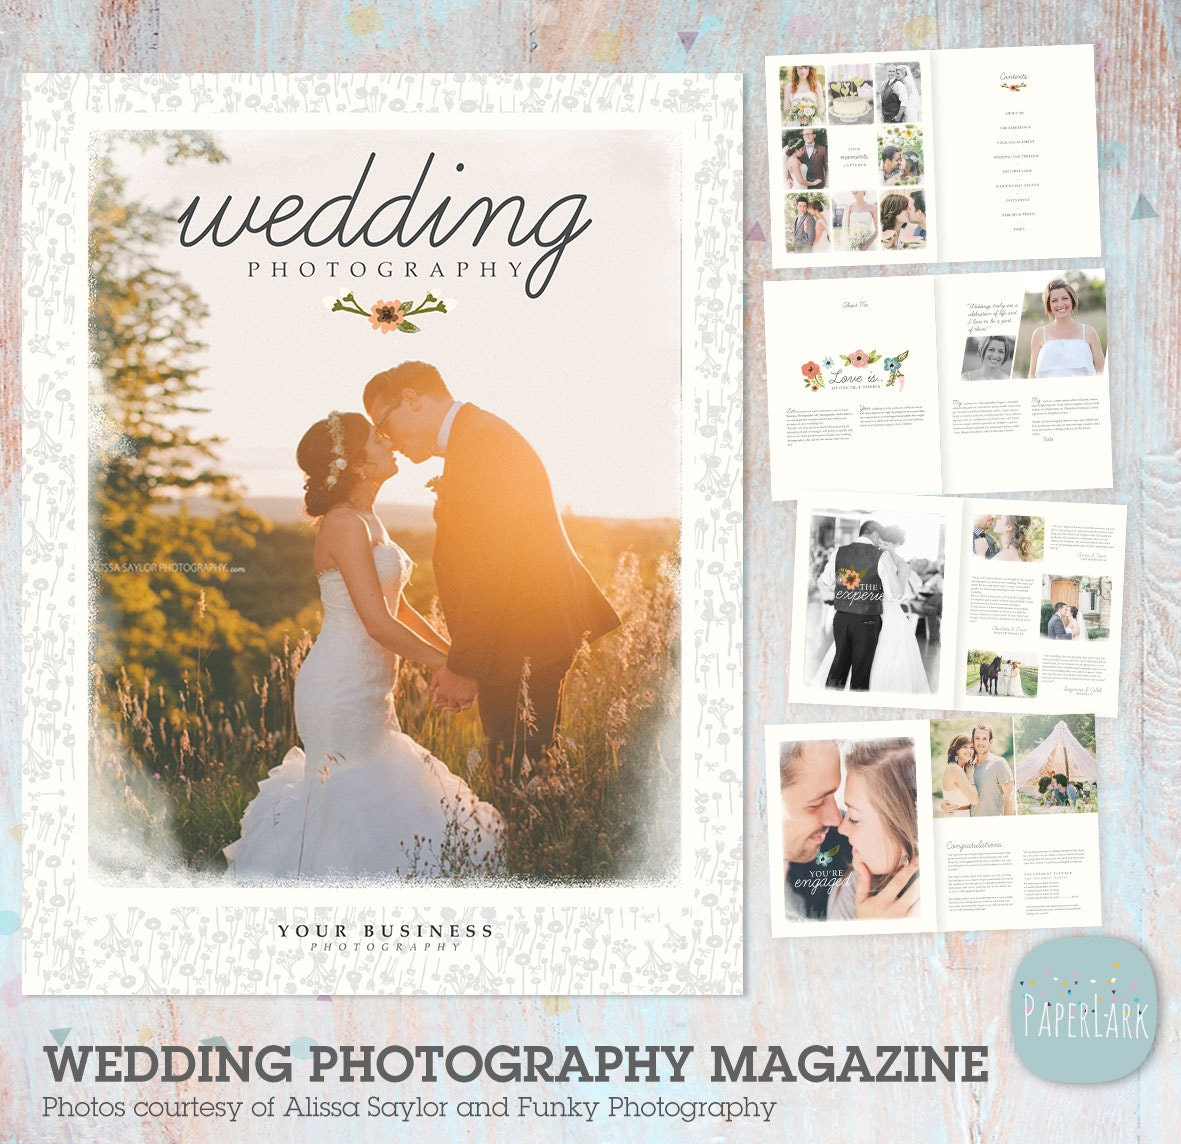 Wedding photography magazine photoshop template 24 page for Wedding photography magazine template